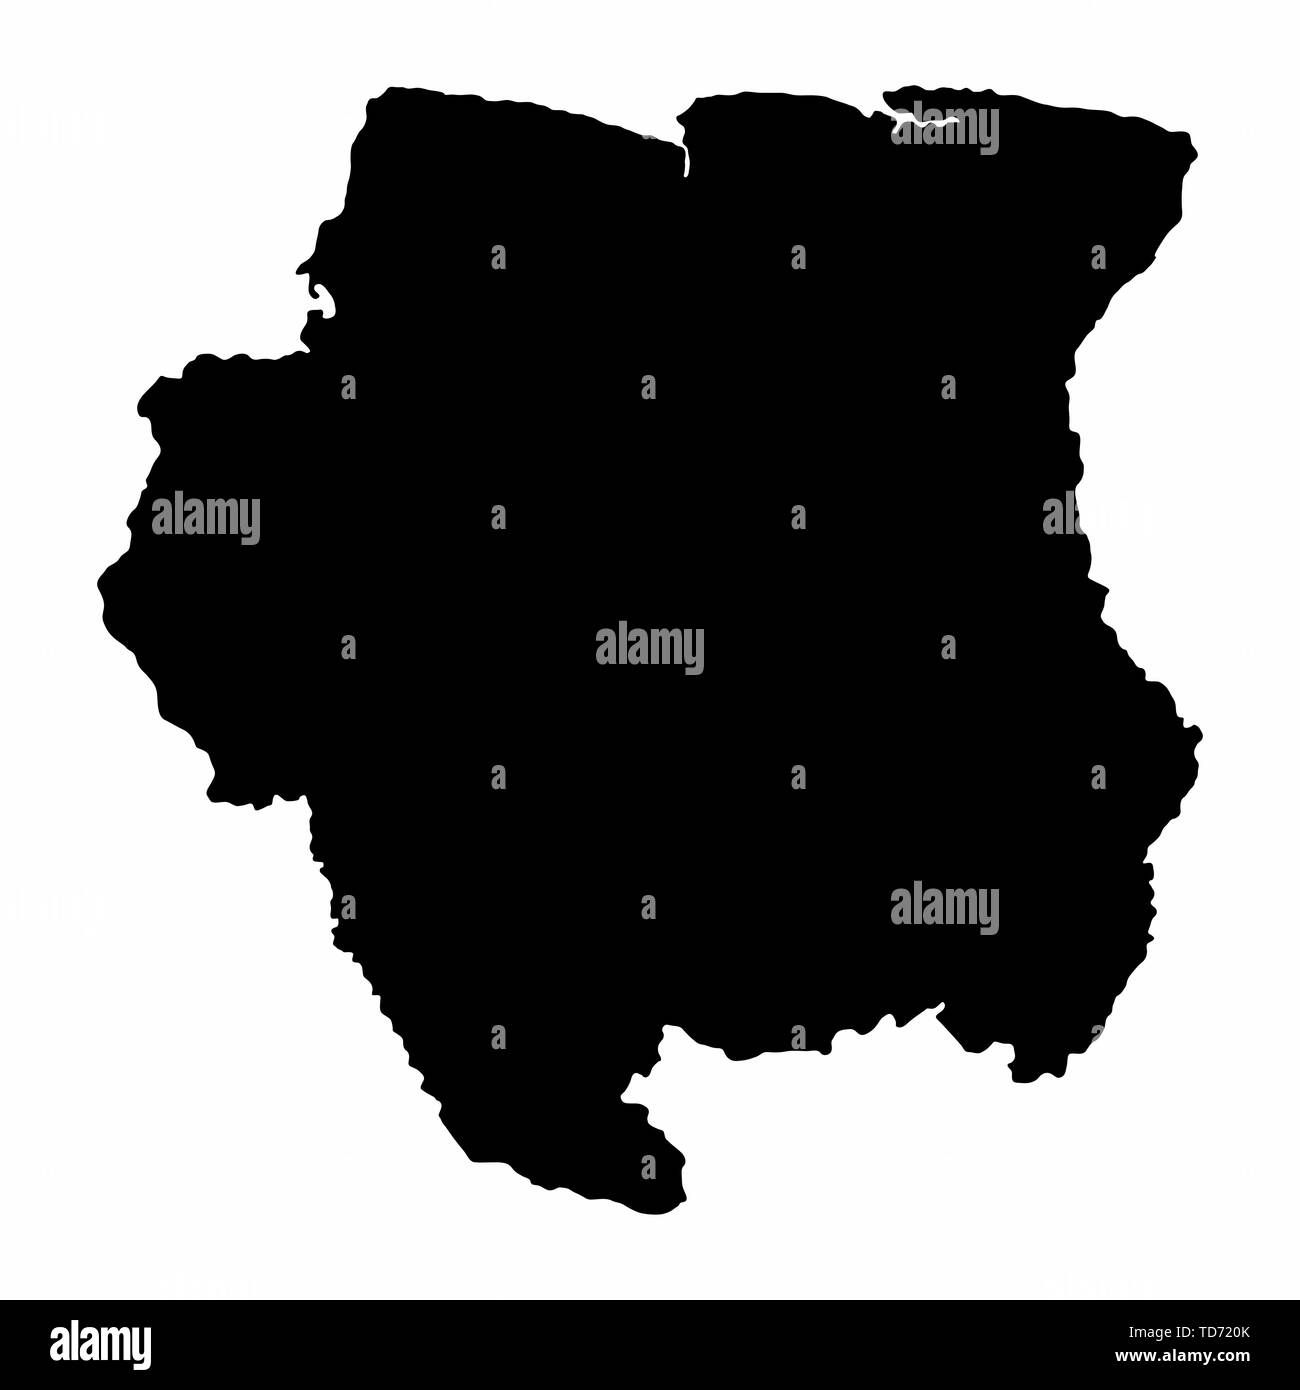 Suriname dark silhouette map isolated on white background - Stock Image